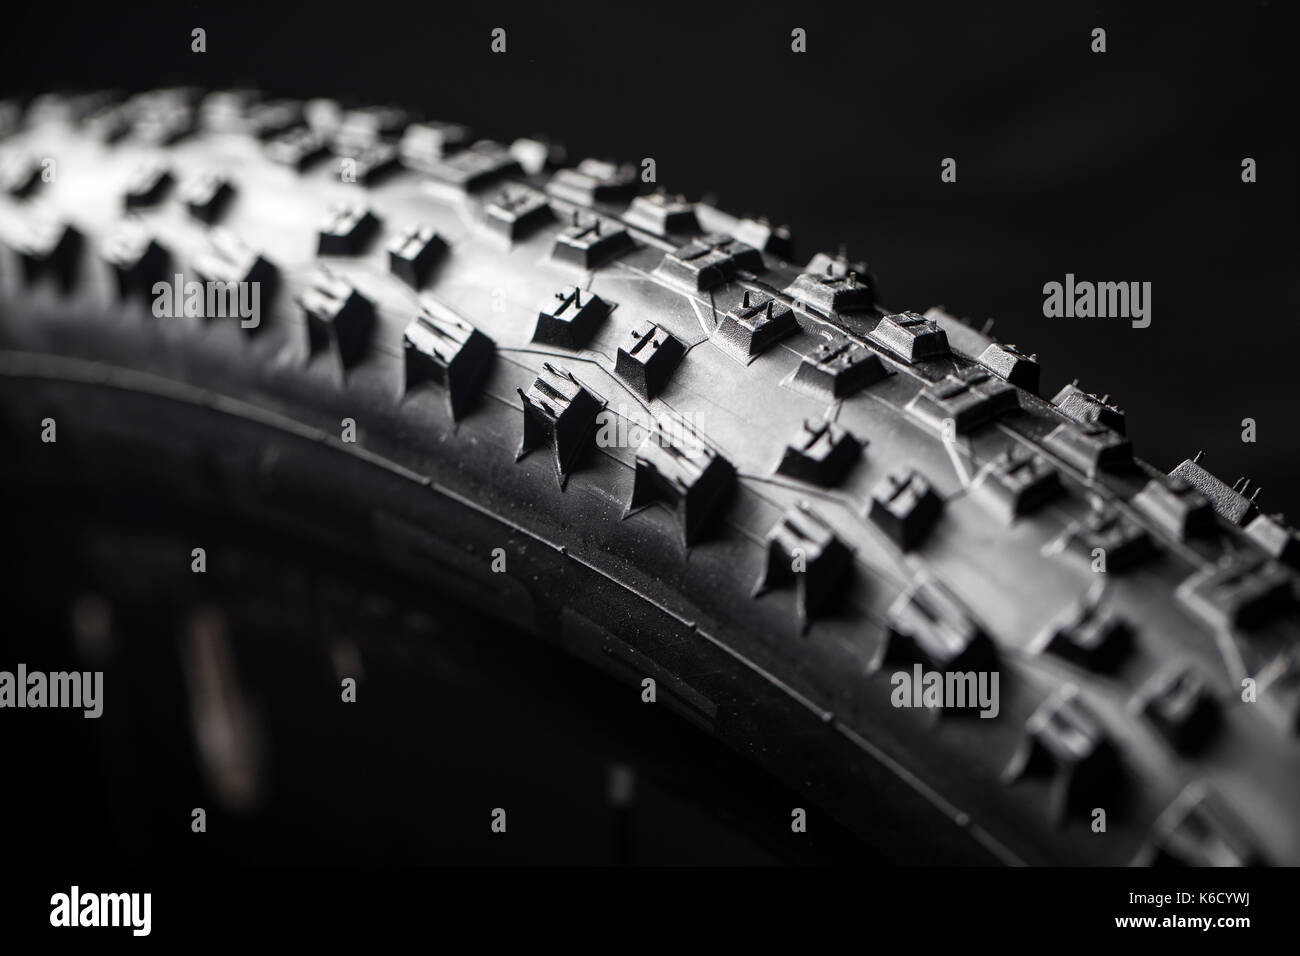 Modern MTB race mountain bike tyre isolated on black background in a studio - Stock Image